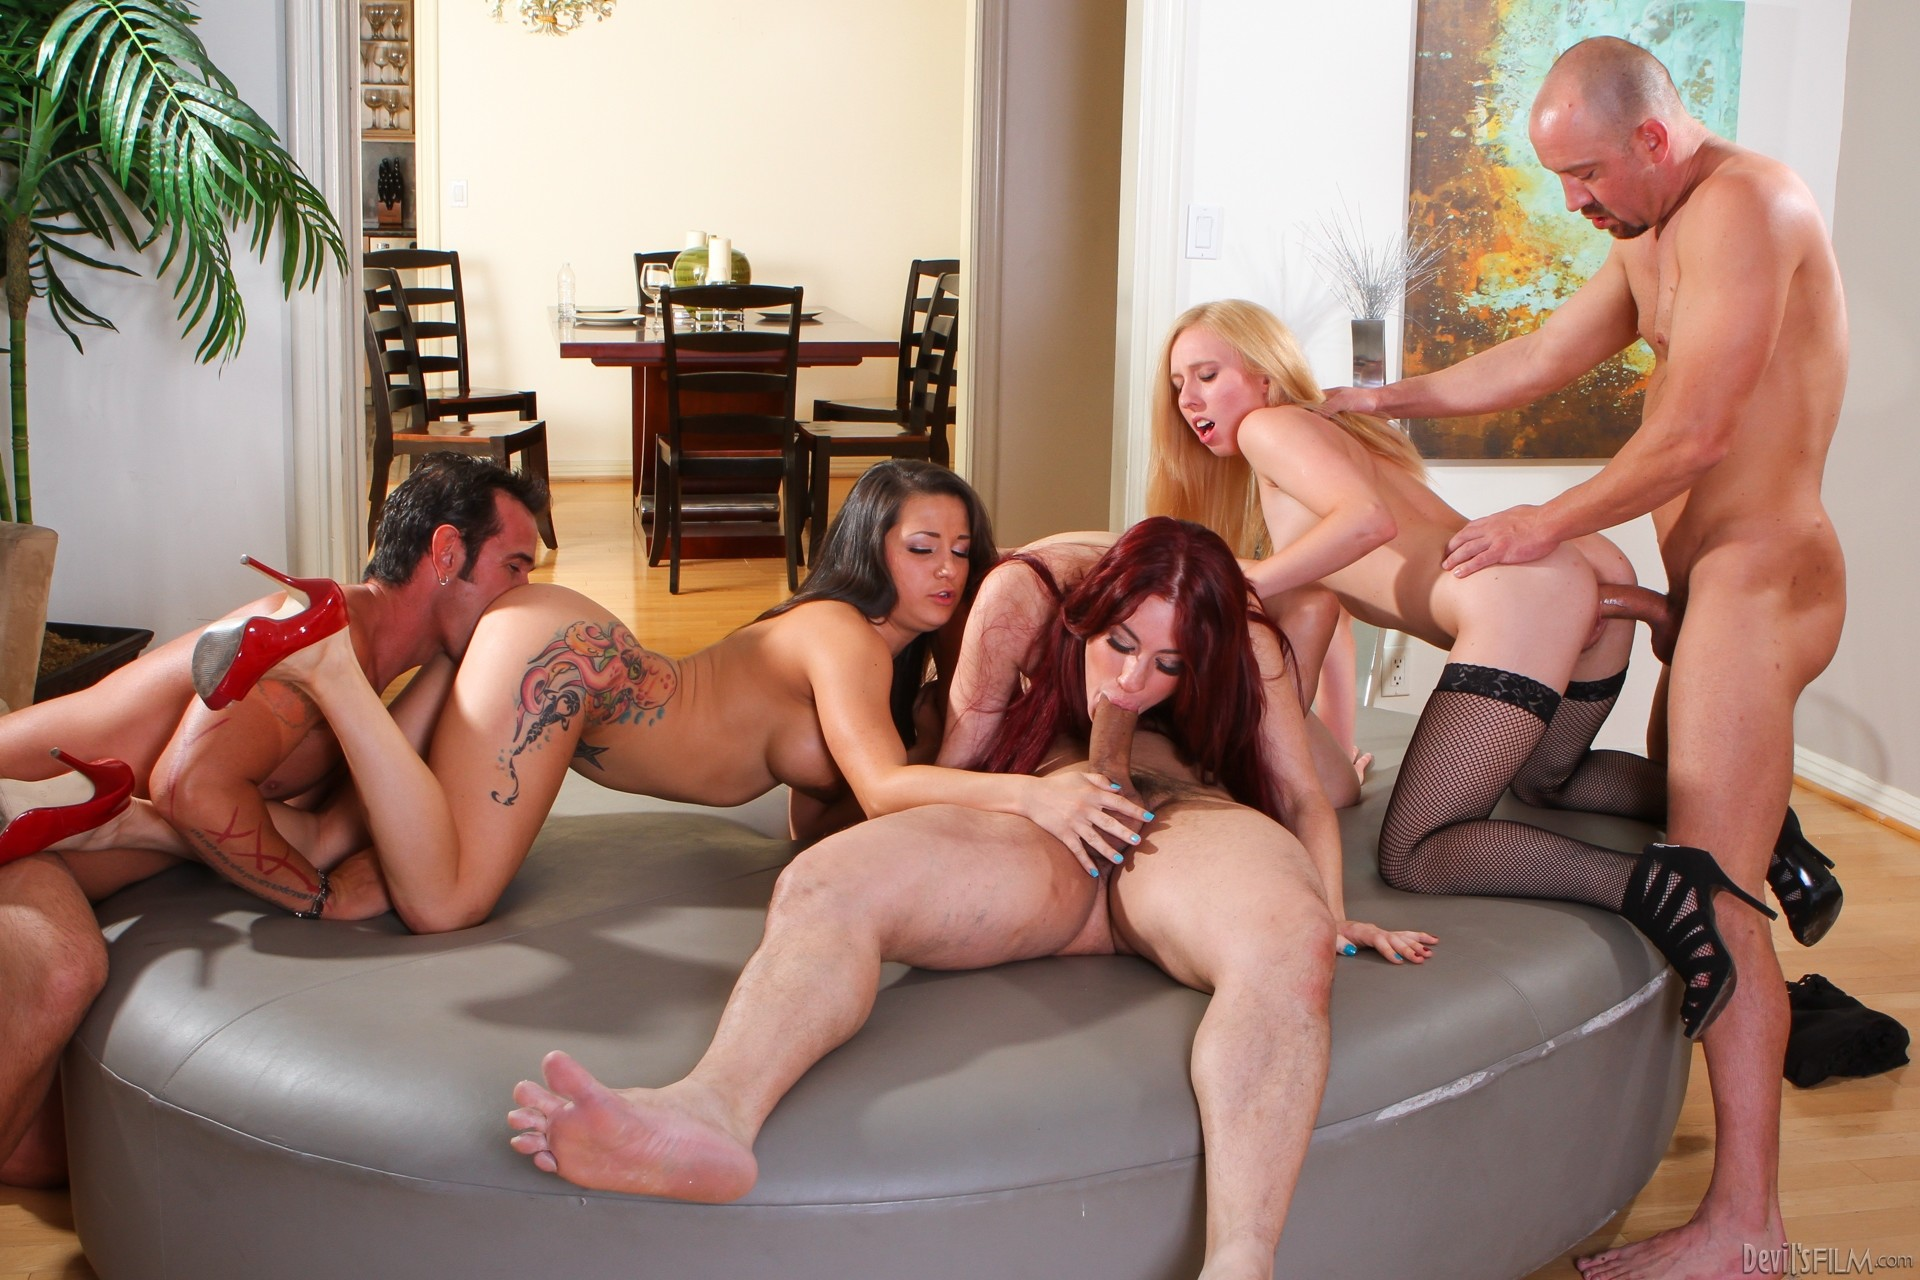 Group sex porn movie — 4